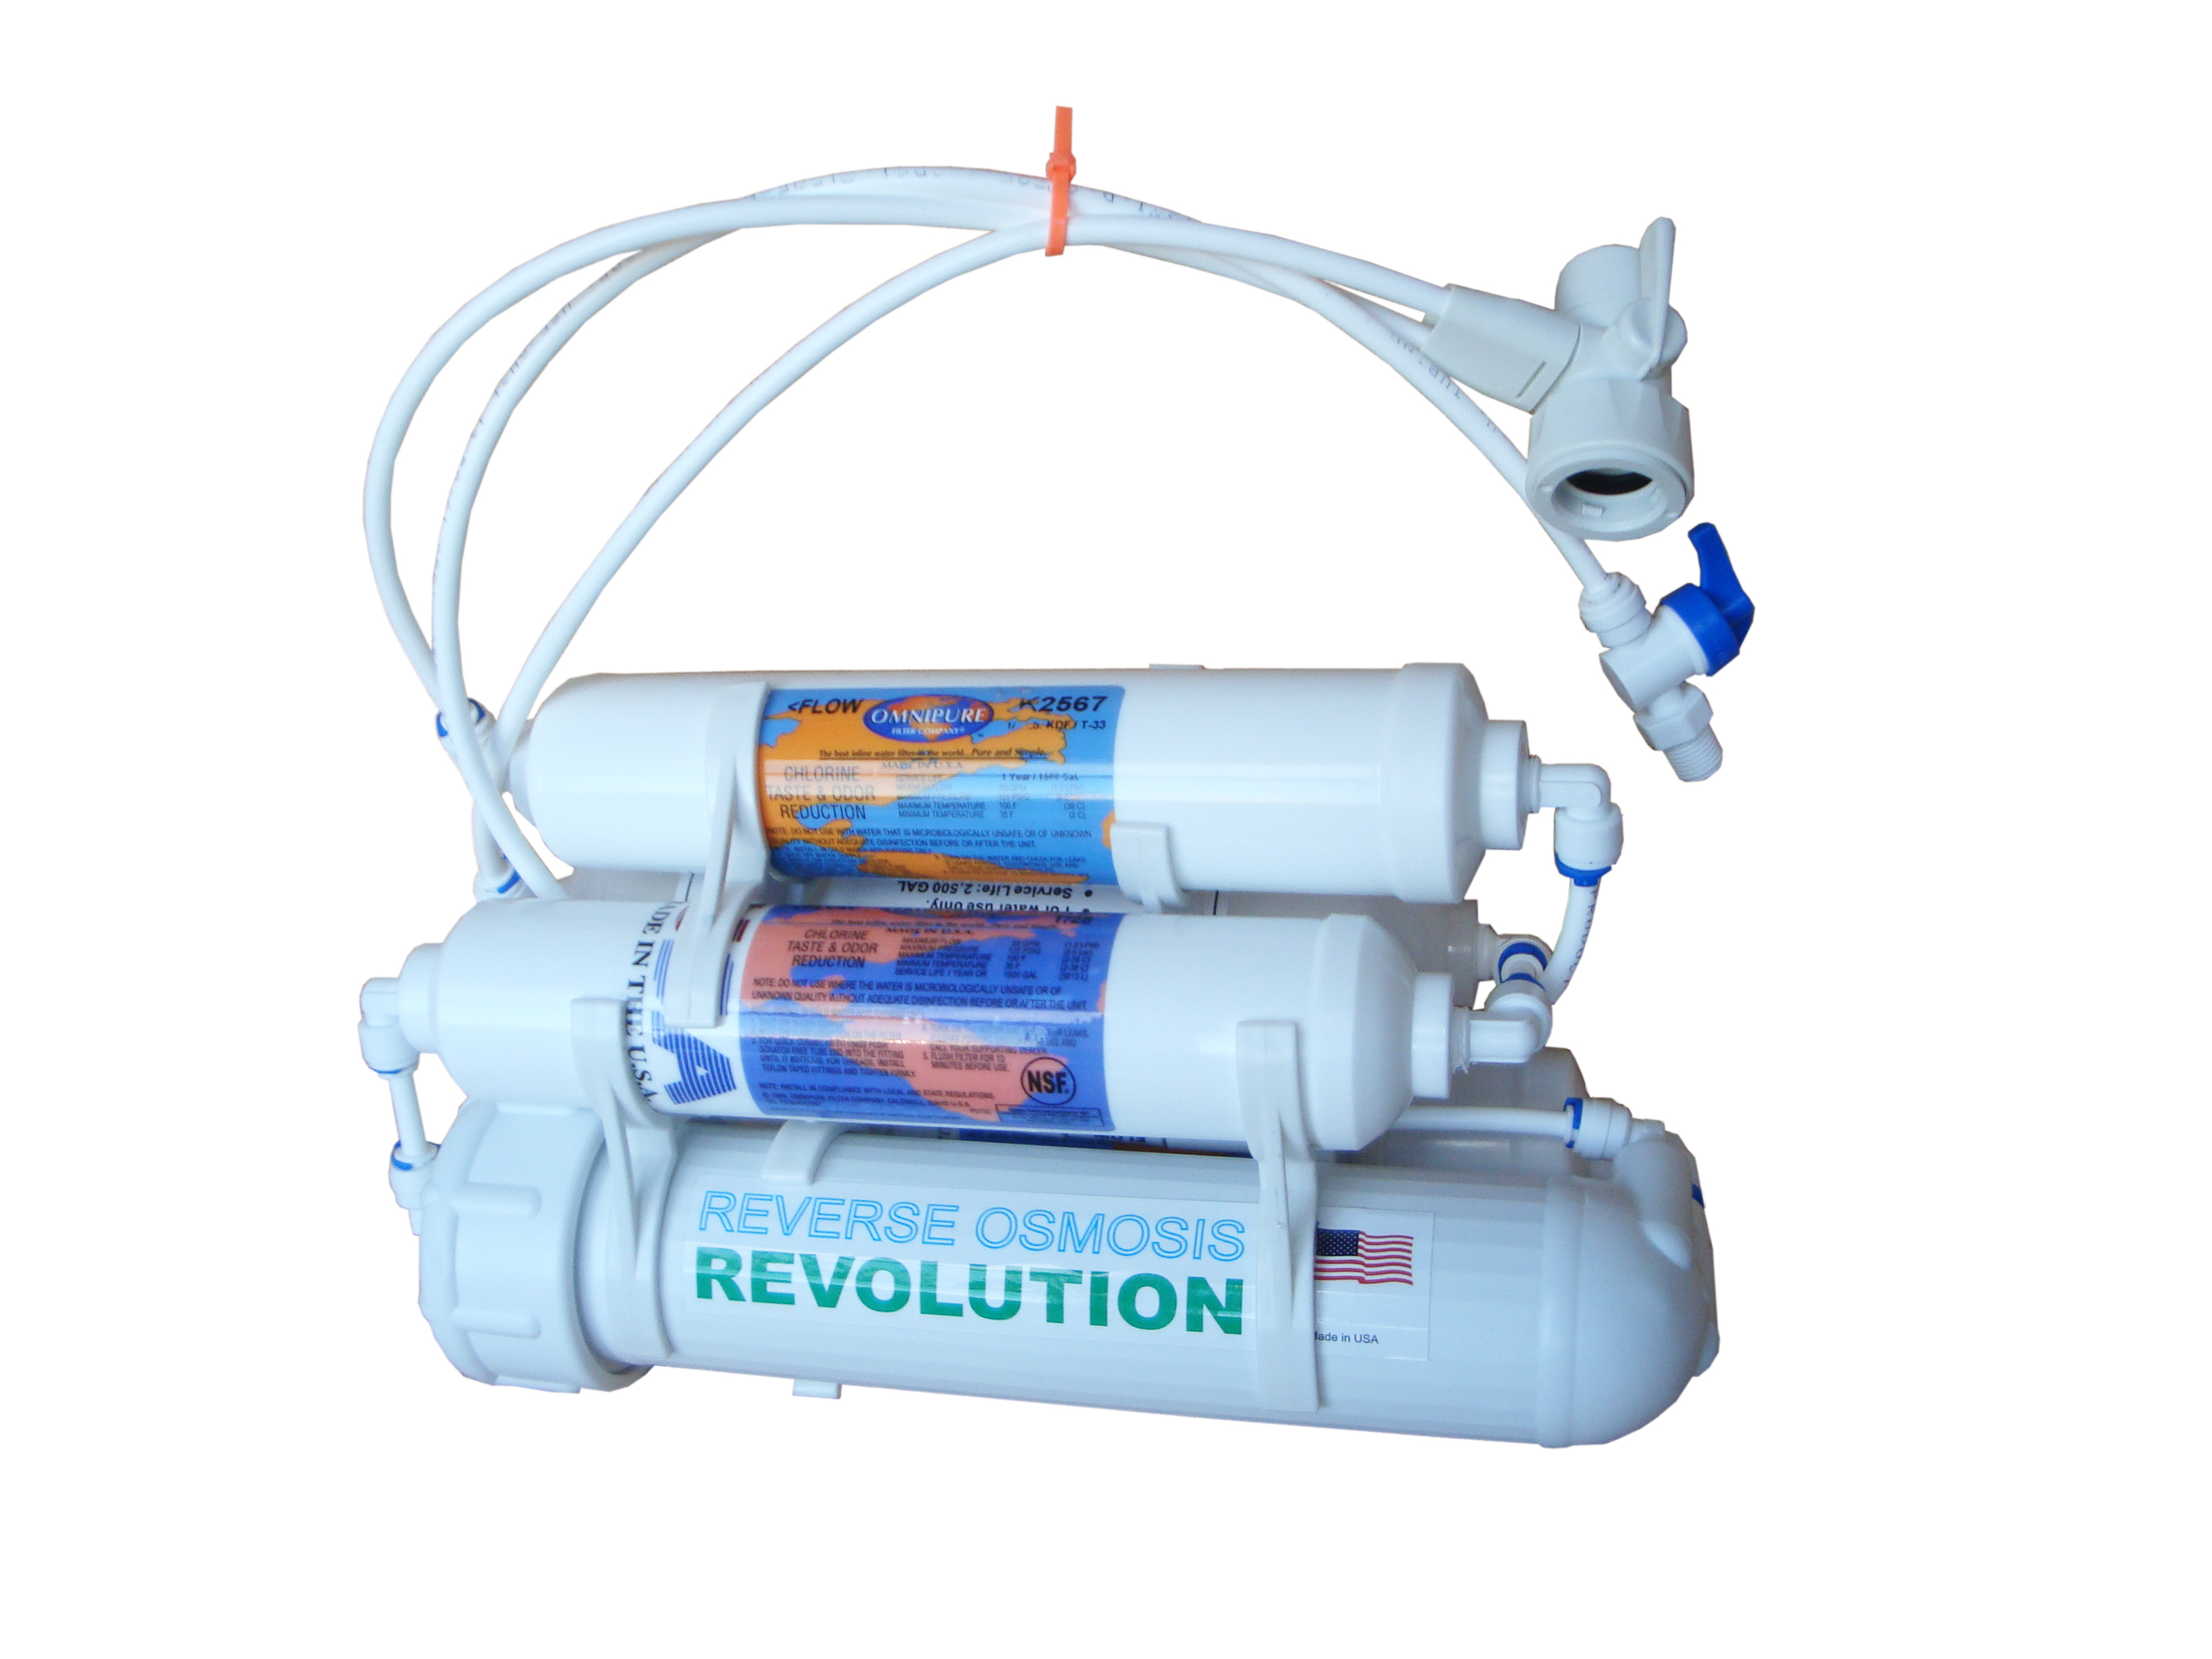 Calcite (Increase pH level) 5-stage Reverse Osmosis Revolution Water Purification System with super KDF filter, 75/100/150 GPD membrane